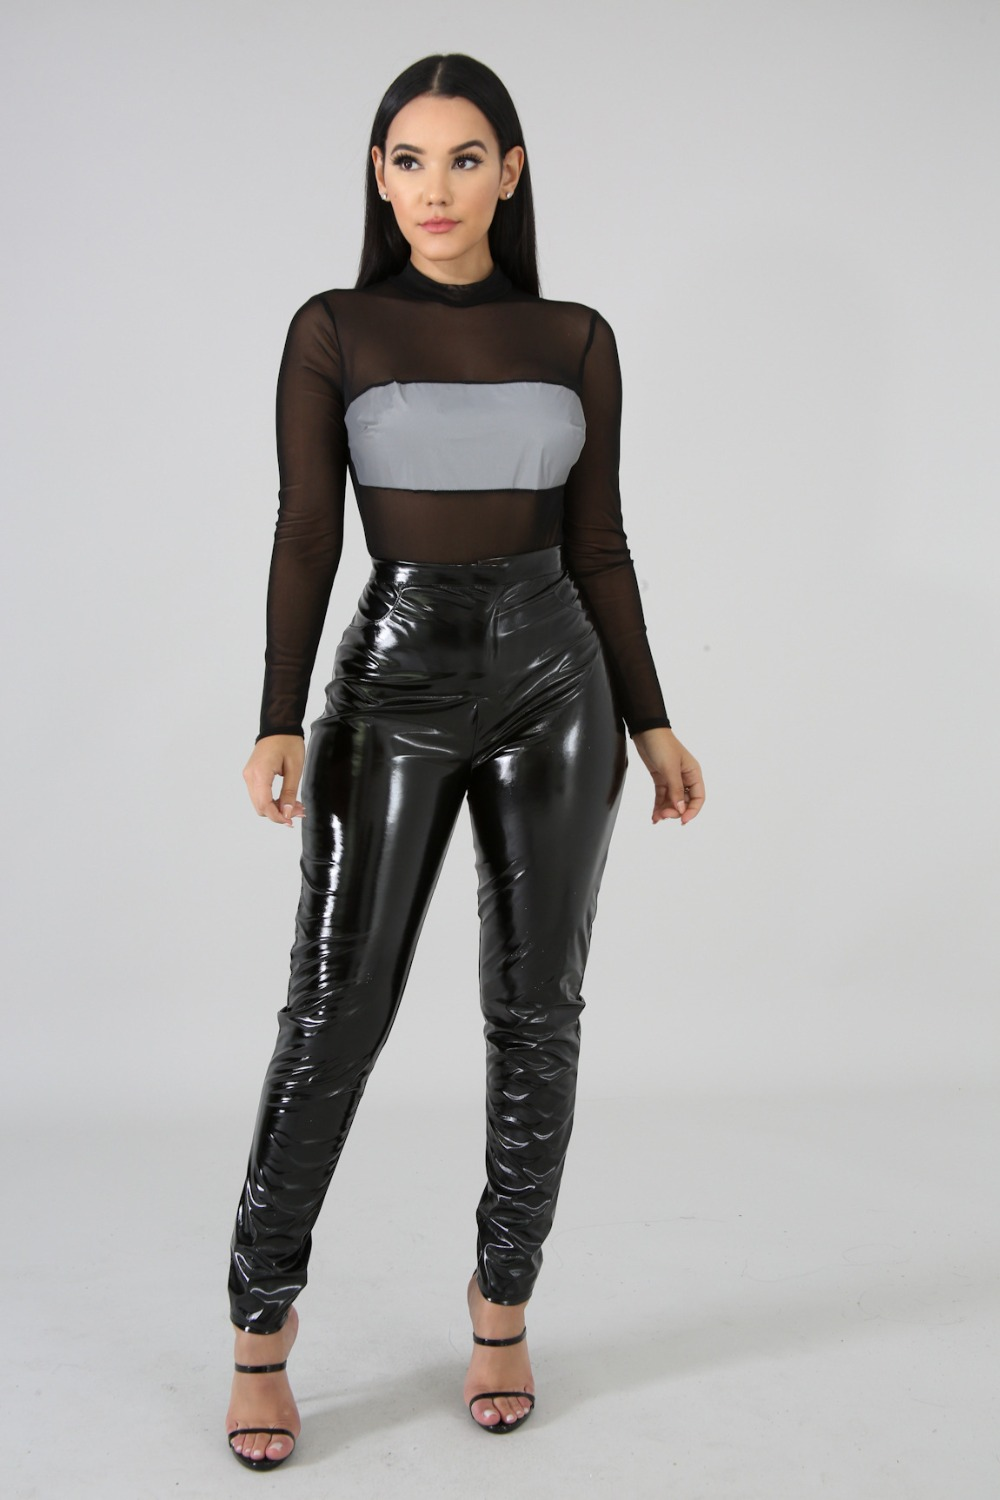 Mesh Patchwork Reflective Women Set Sexy Perspective Mesh O Neck Crop Top With PU Pants Two Piece Set Night Club Suit Female Set